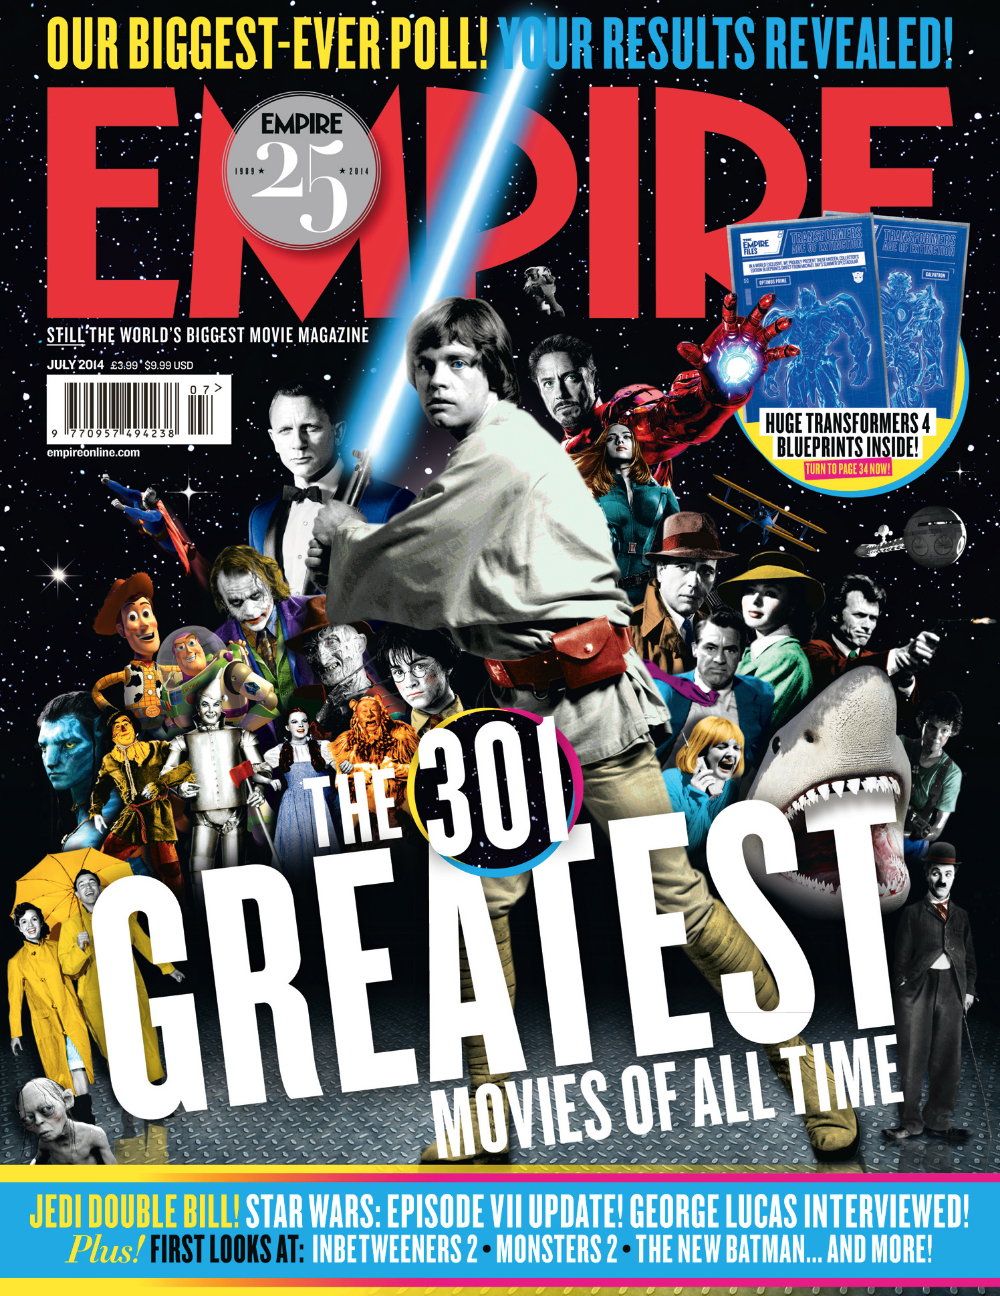 301 Greatest Movies Of All Time Cover Empire Matt Herring Debut Art Great Movies Star Wars Comic Books Star Wars Books